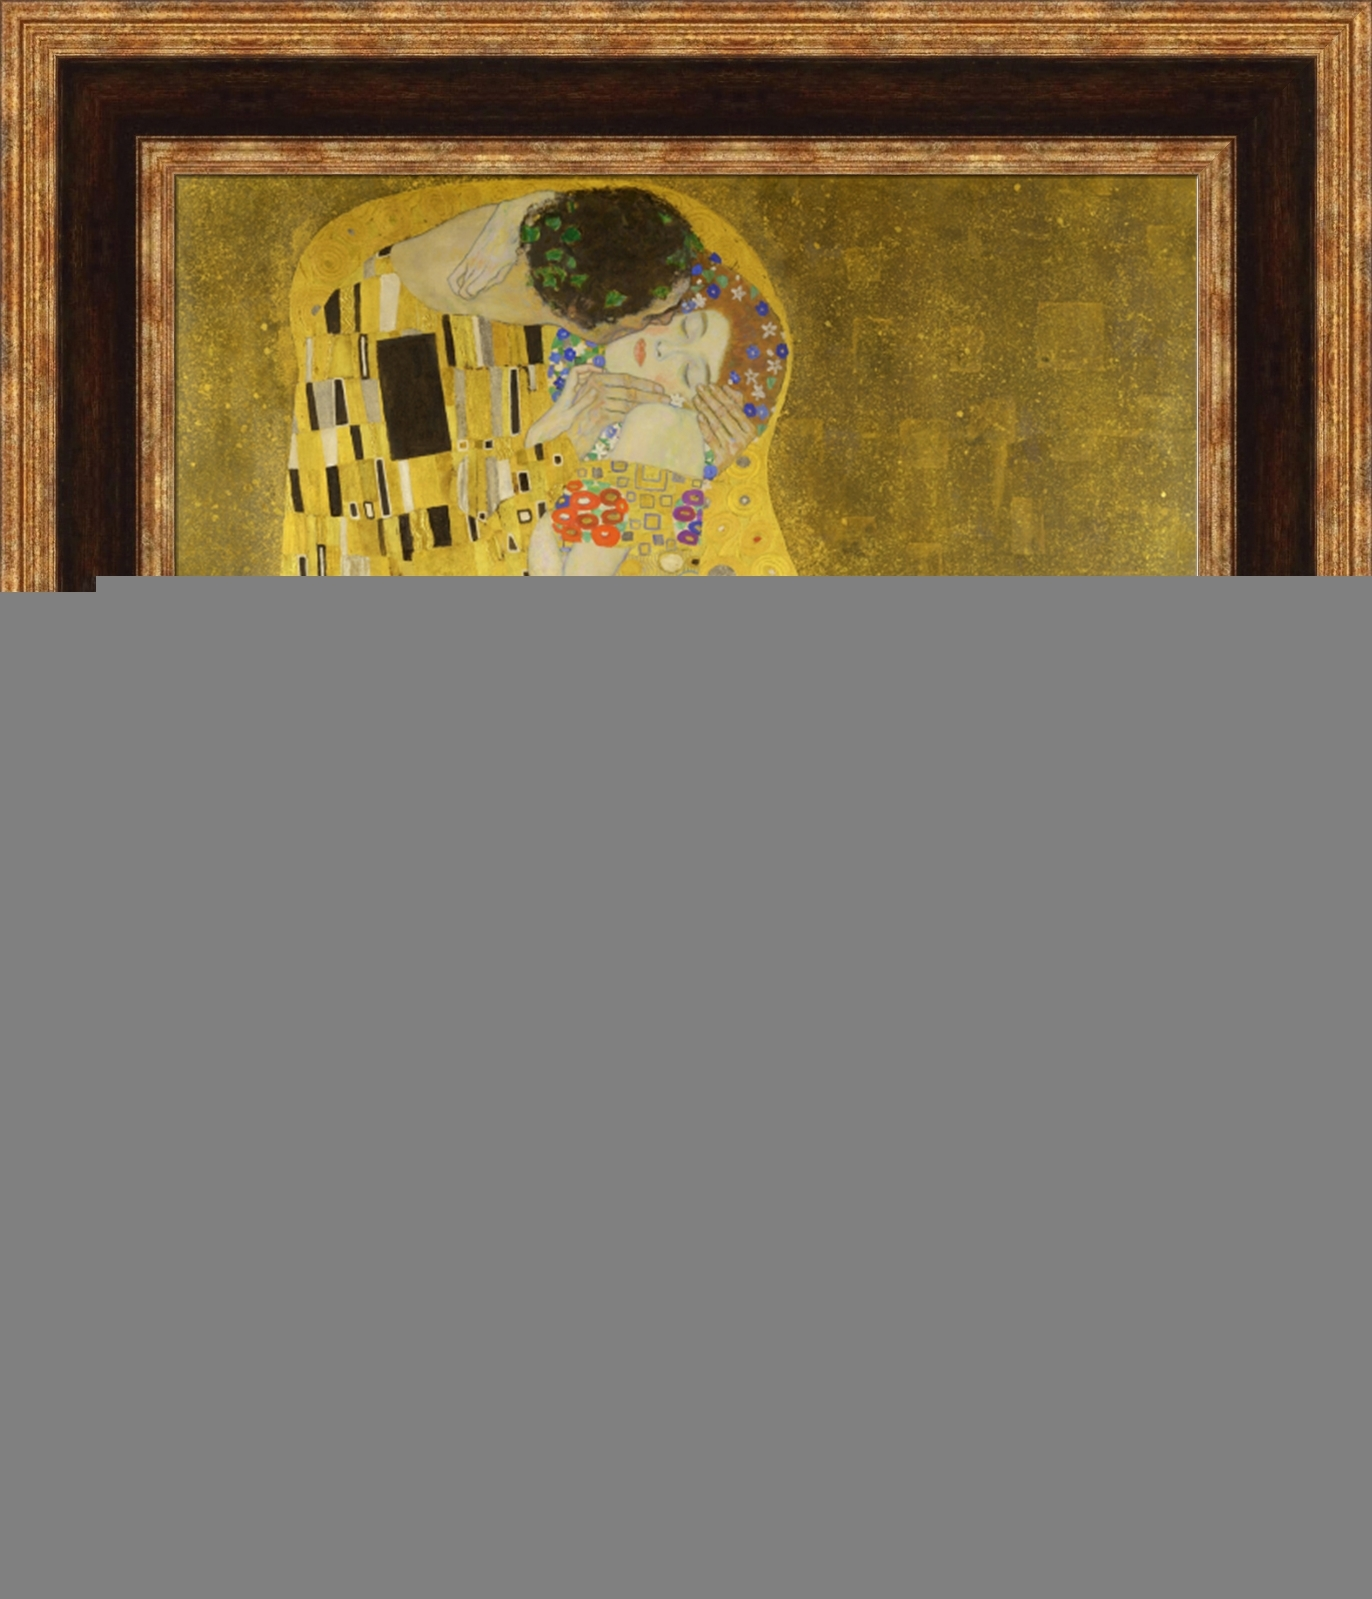 Gustav Klimt The Kiss Framed Canvas Giclee Print 23x27 (V07-12 ...